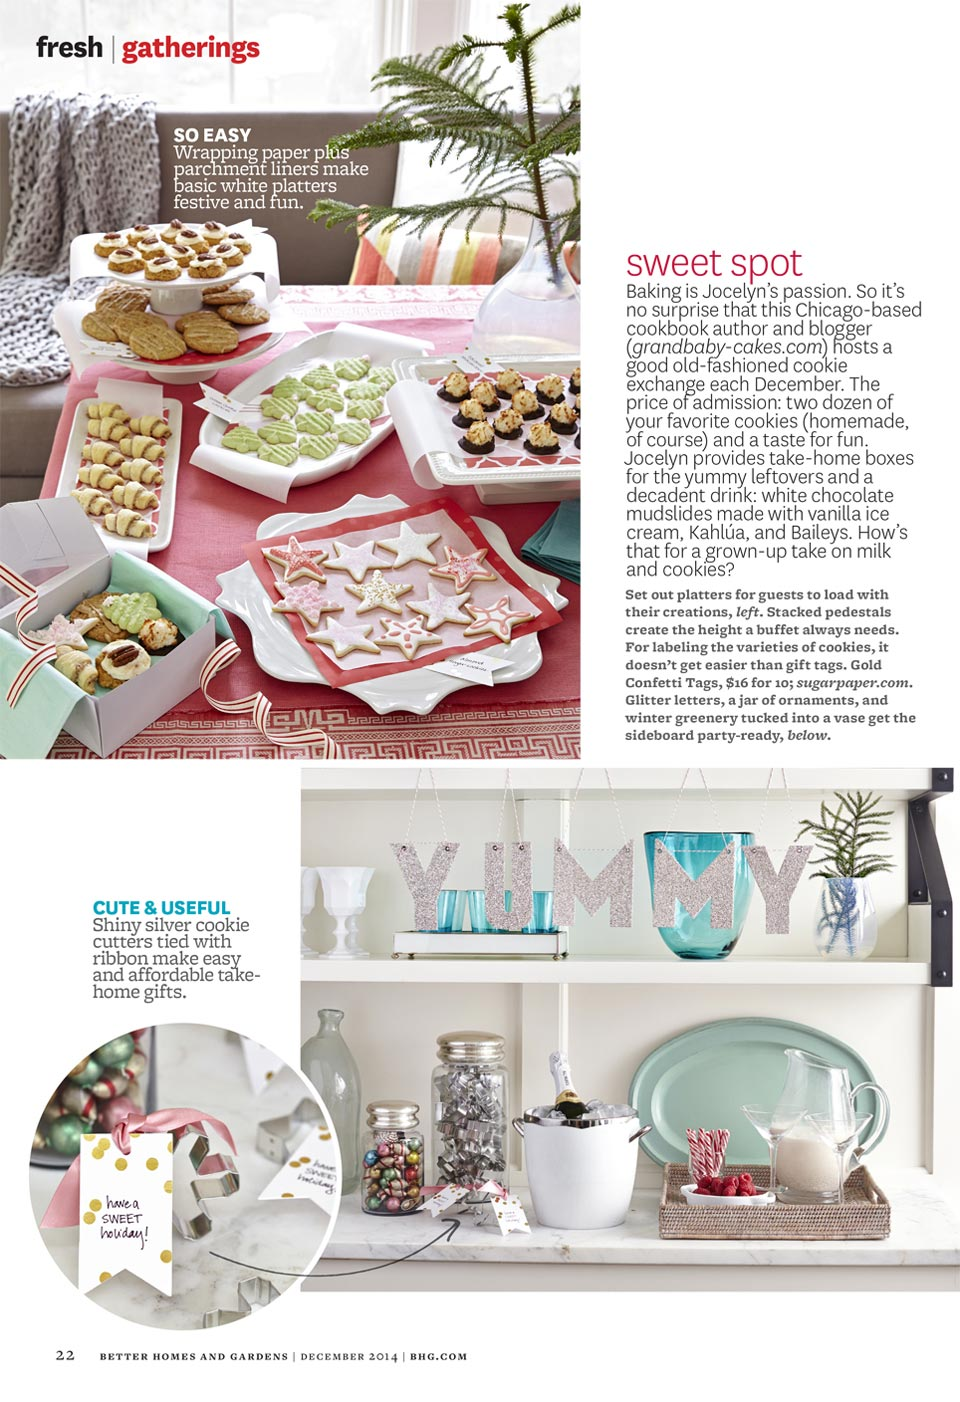 Better Homes and Gardens December 2014